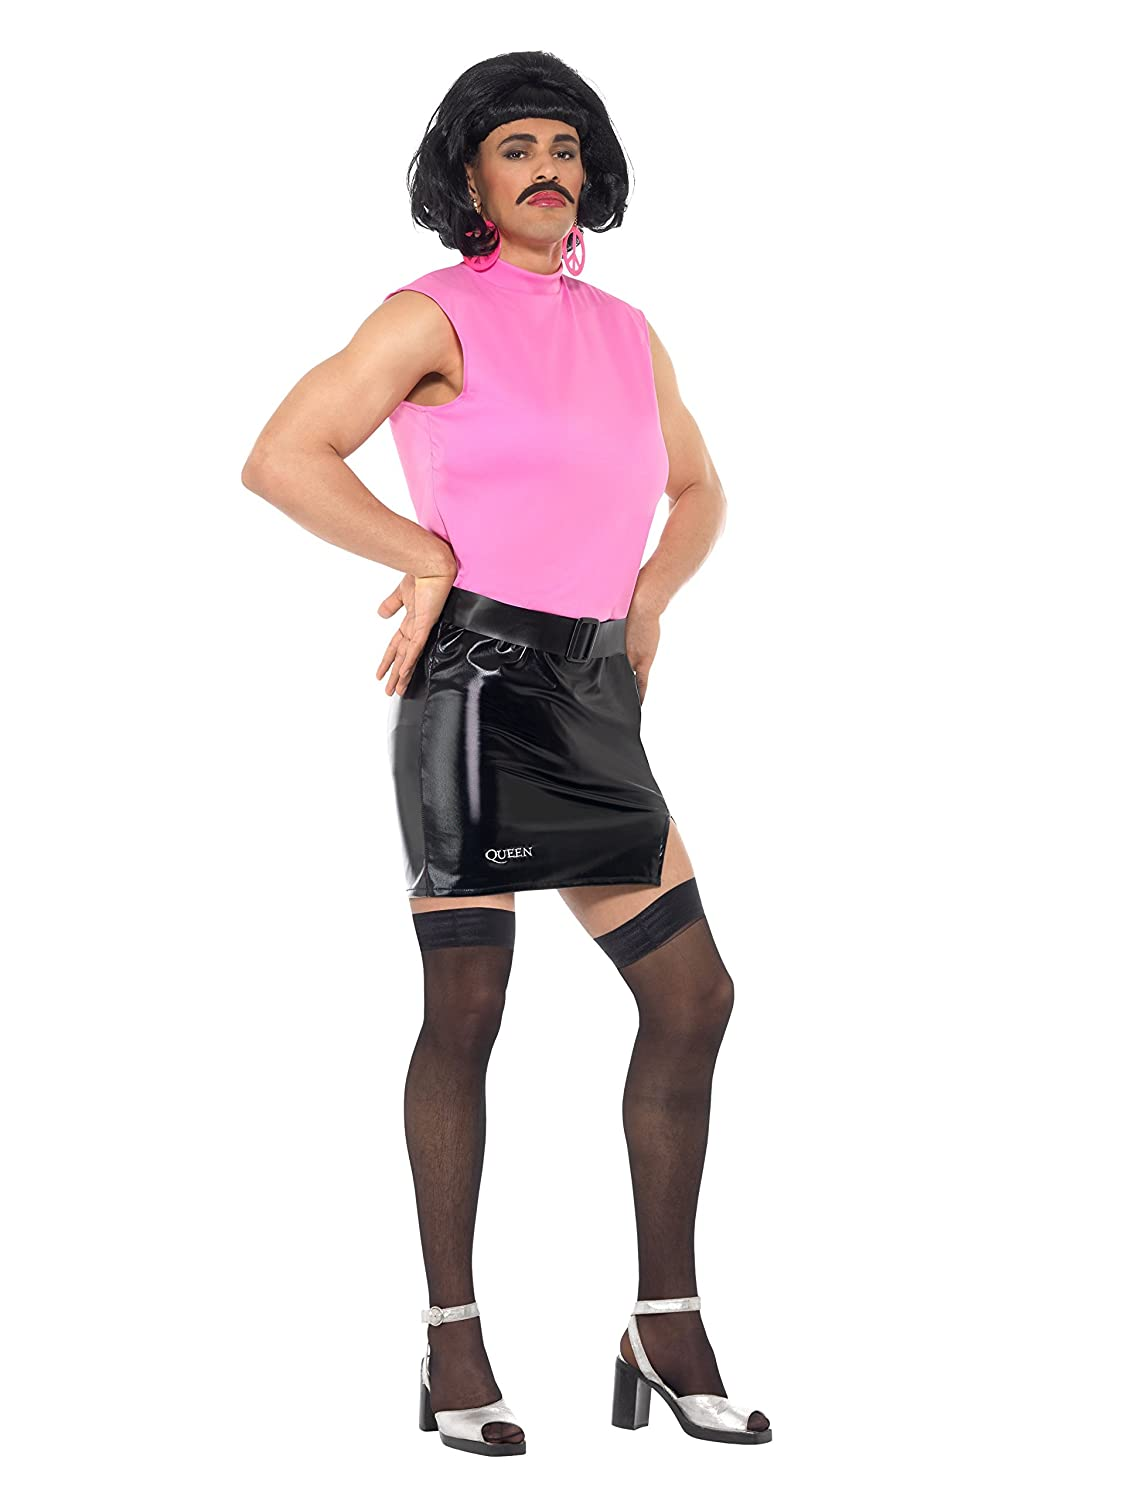 Freddie Mercury I Want To Break Free Costume